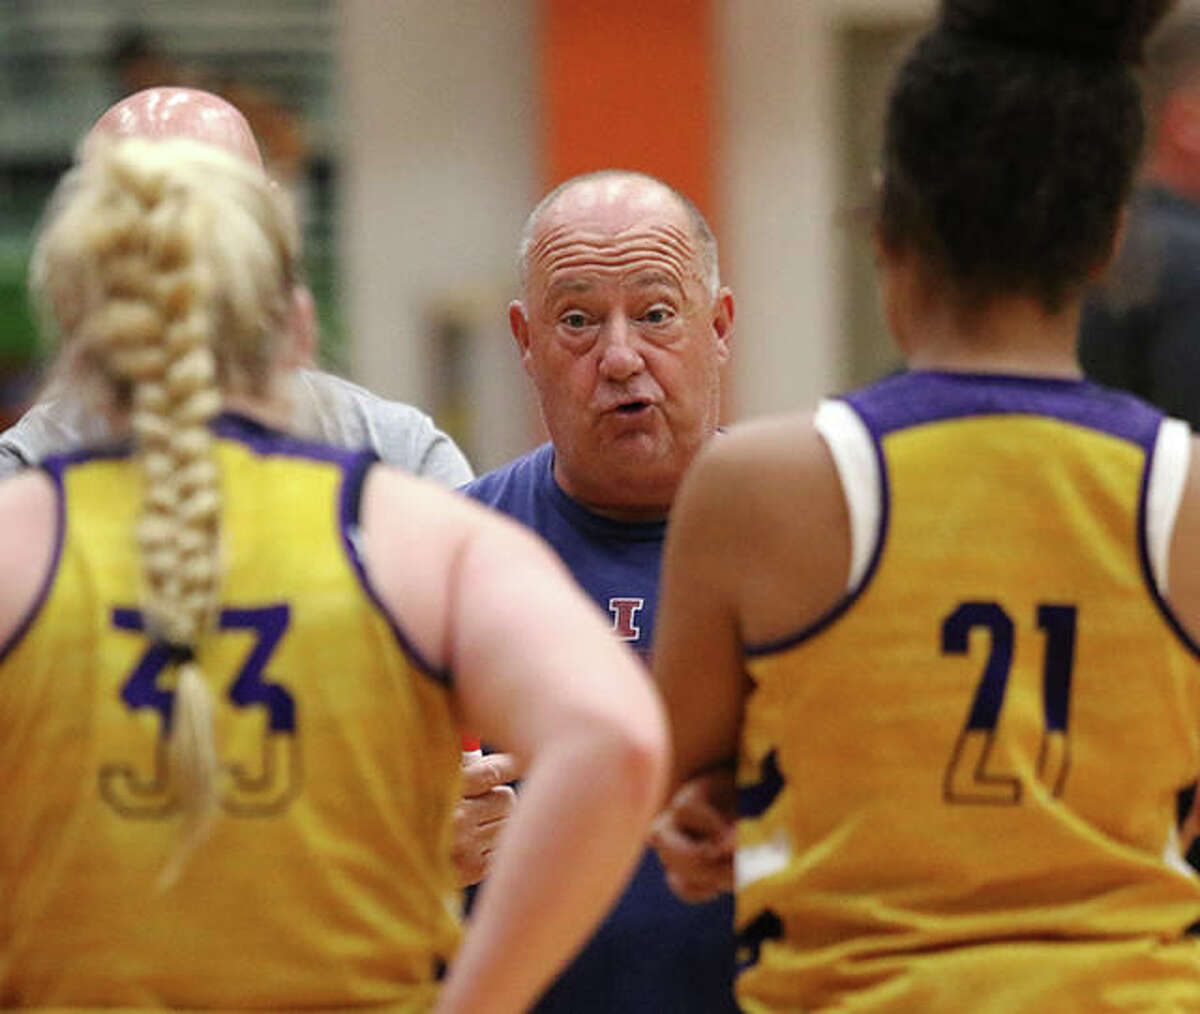 CM coach Mike Arbuthnot instructs his team during a timeout in a June 29 girls basketball game against the host Tigers in Edwardsville. CM is coming off a 16-1 season.